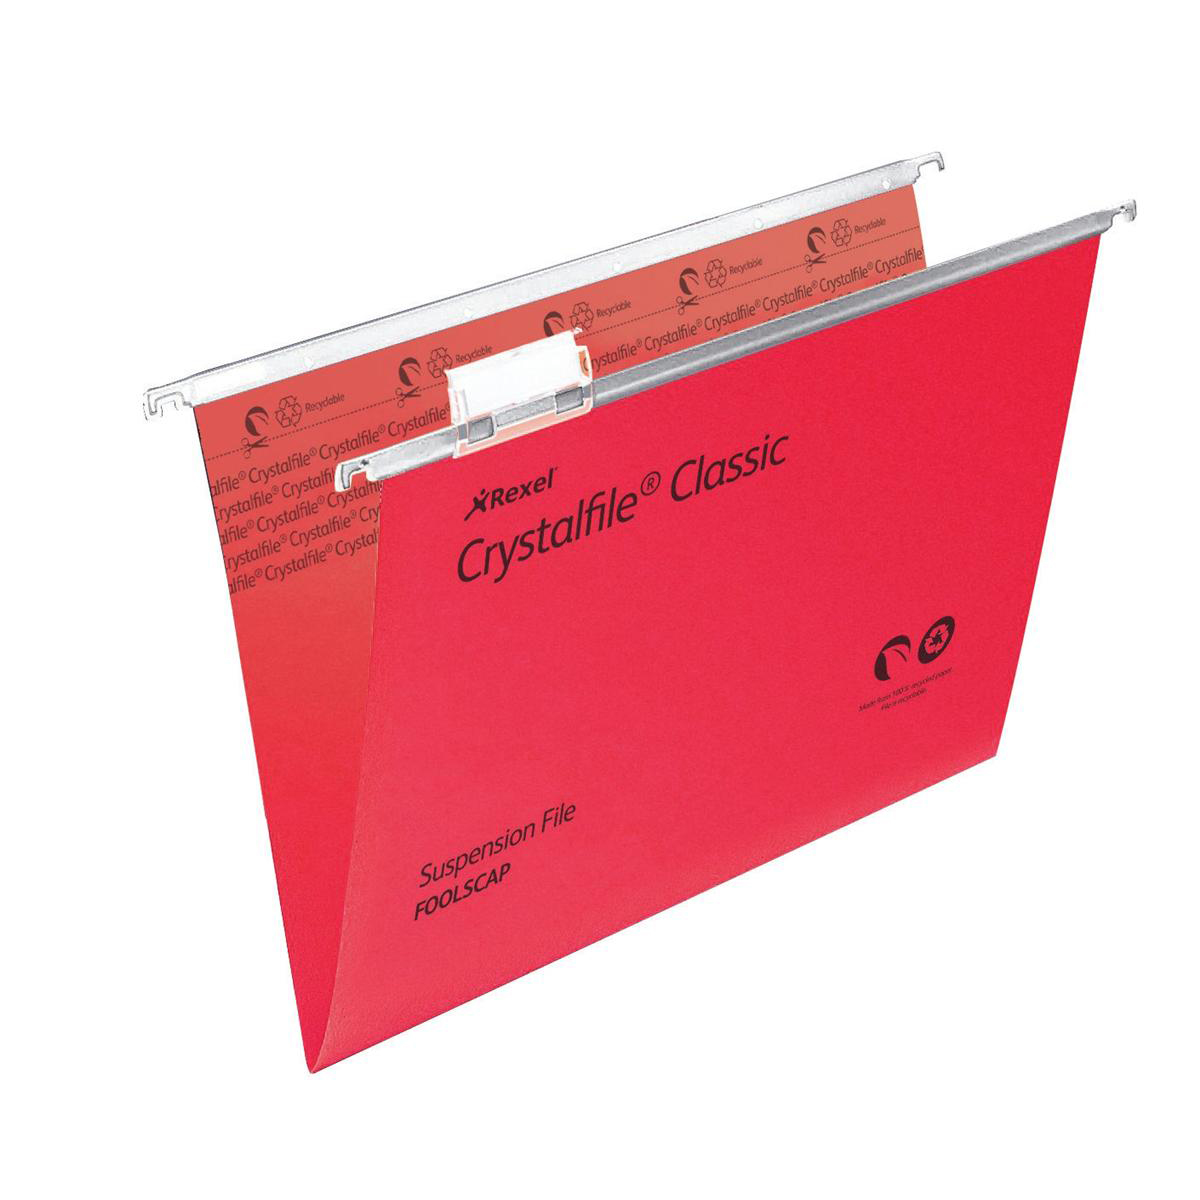 Rexel Crystalfile Classic Suspension File Manilla V-base Foolscap Red Ref 78141 Pack 50 COMPETITION